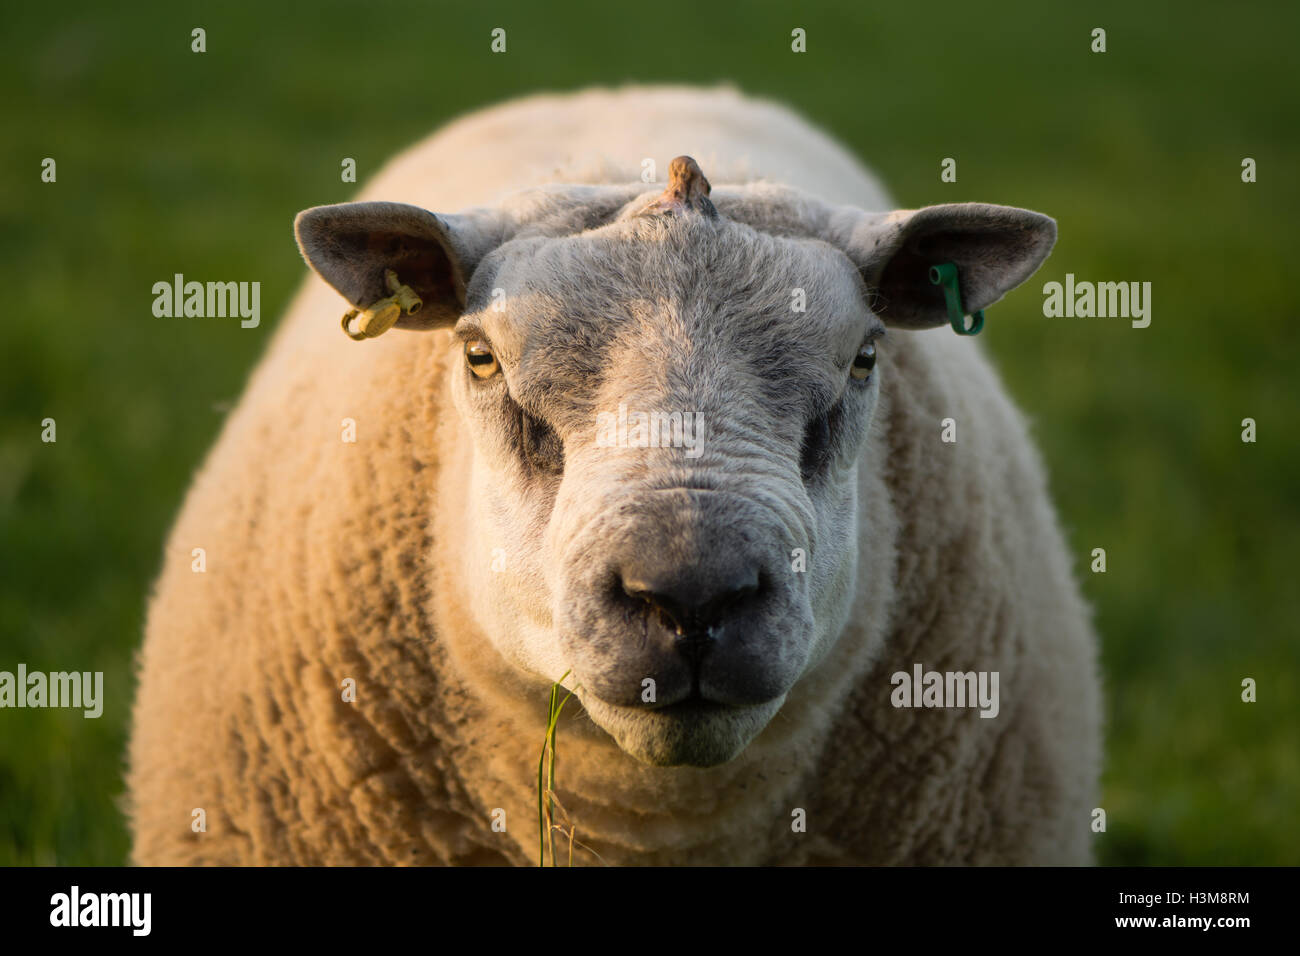 Ram with growth emerging from centre of skull. Sheep with tumour on head, with appearance of horn, emerging through Stock Photo